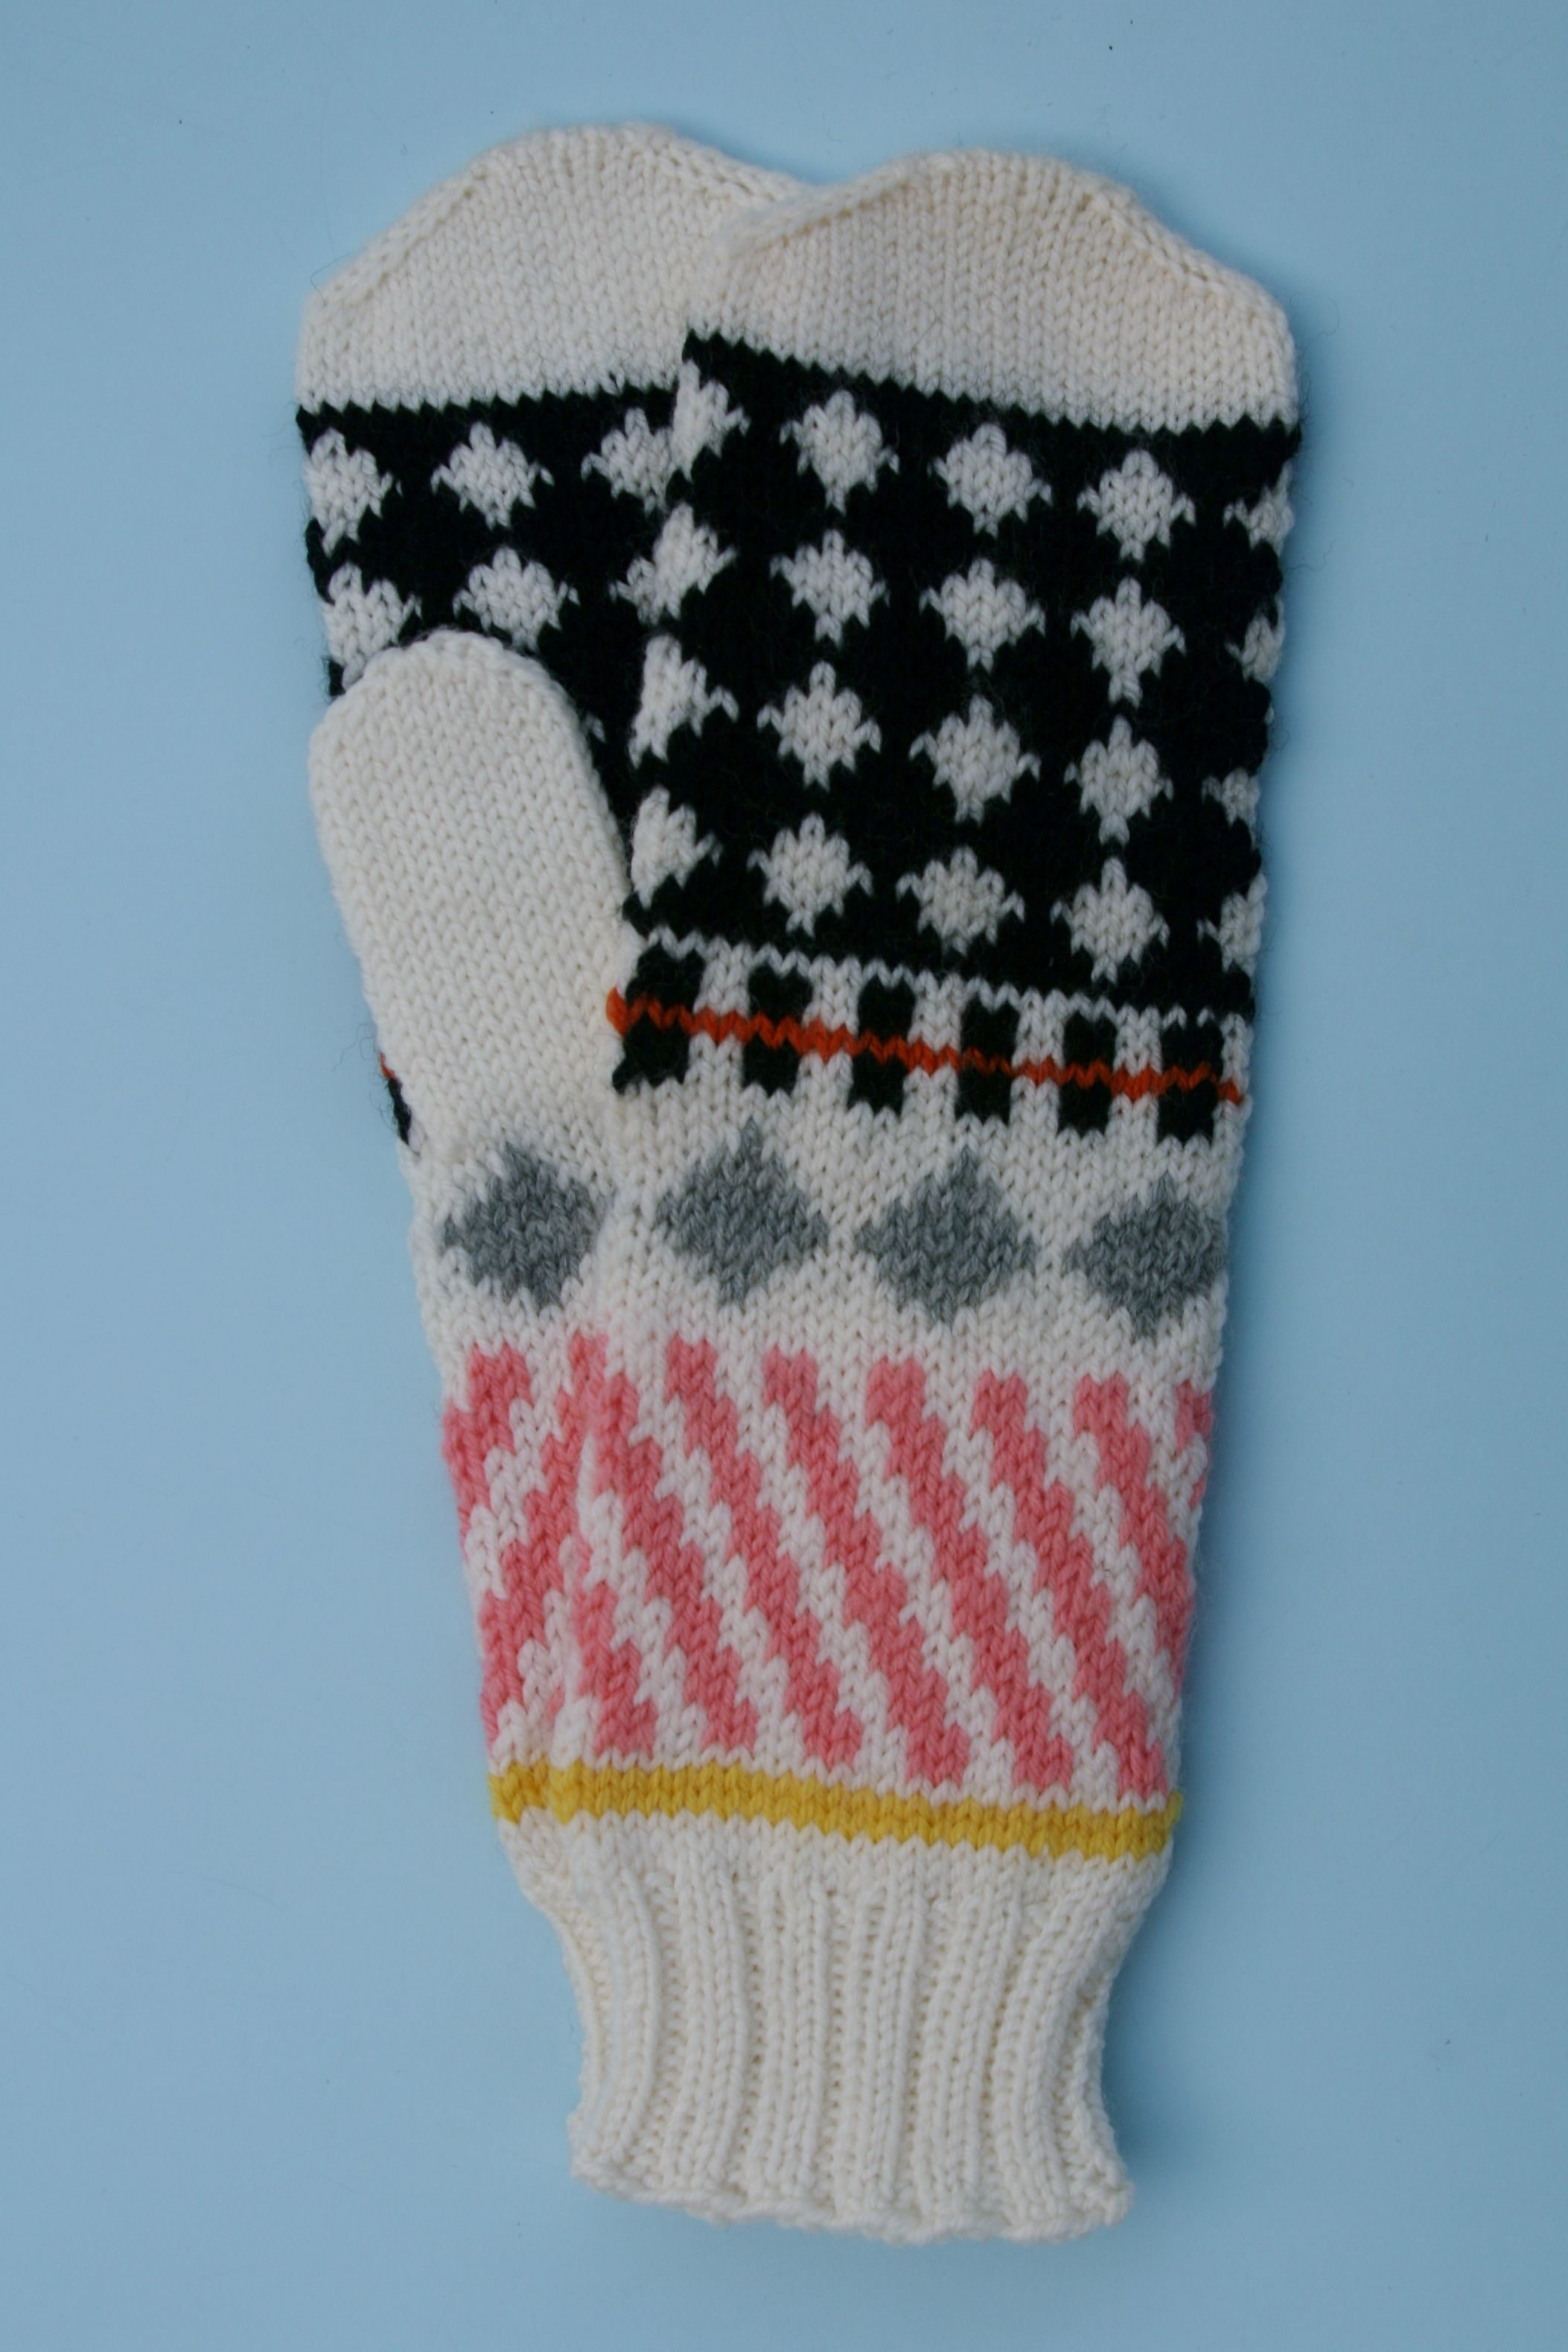 Mittens designed by margretmaria. Inspired by an outfit from Sonia Rykiels s/s 2012 collection. https://www.margretmaria.com